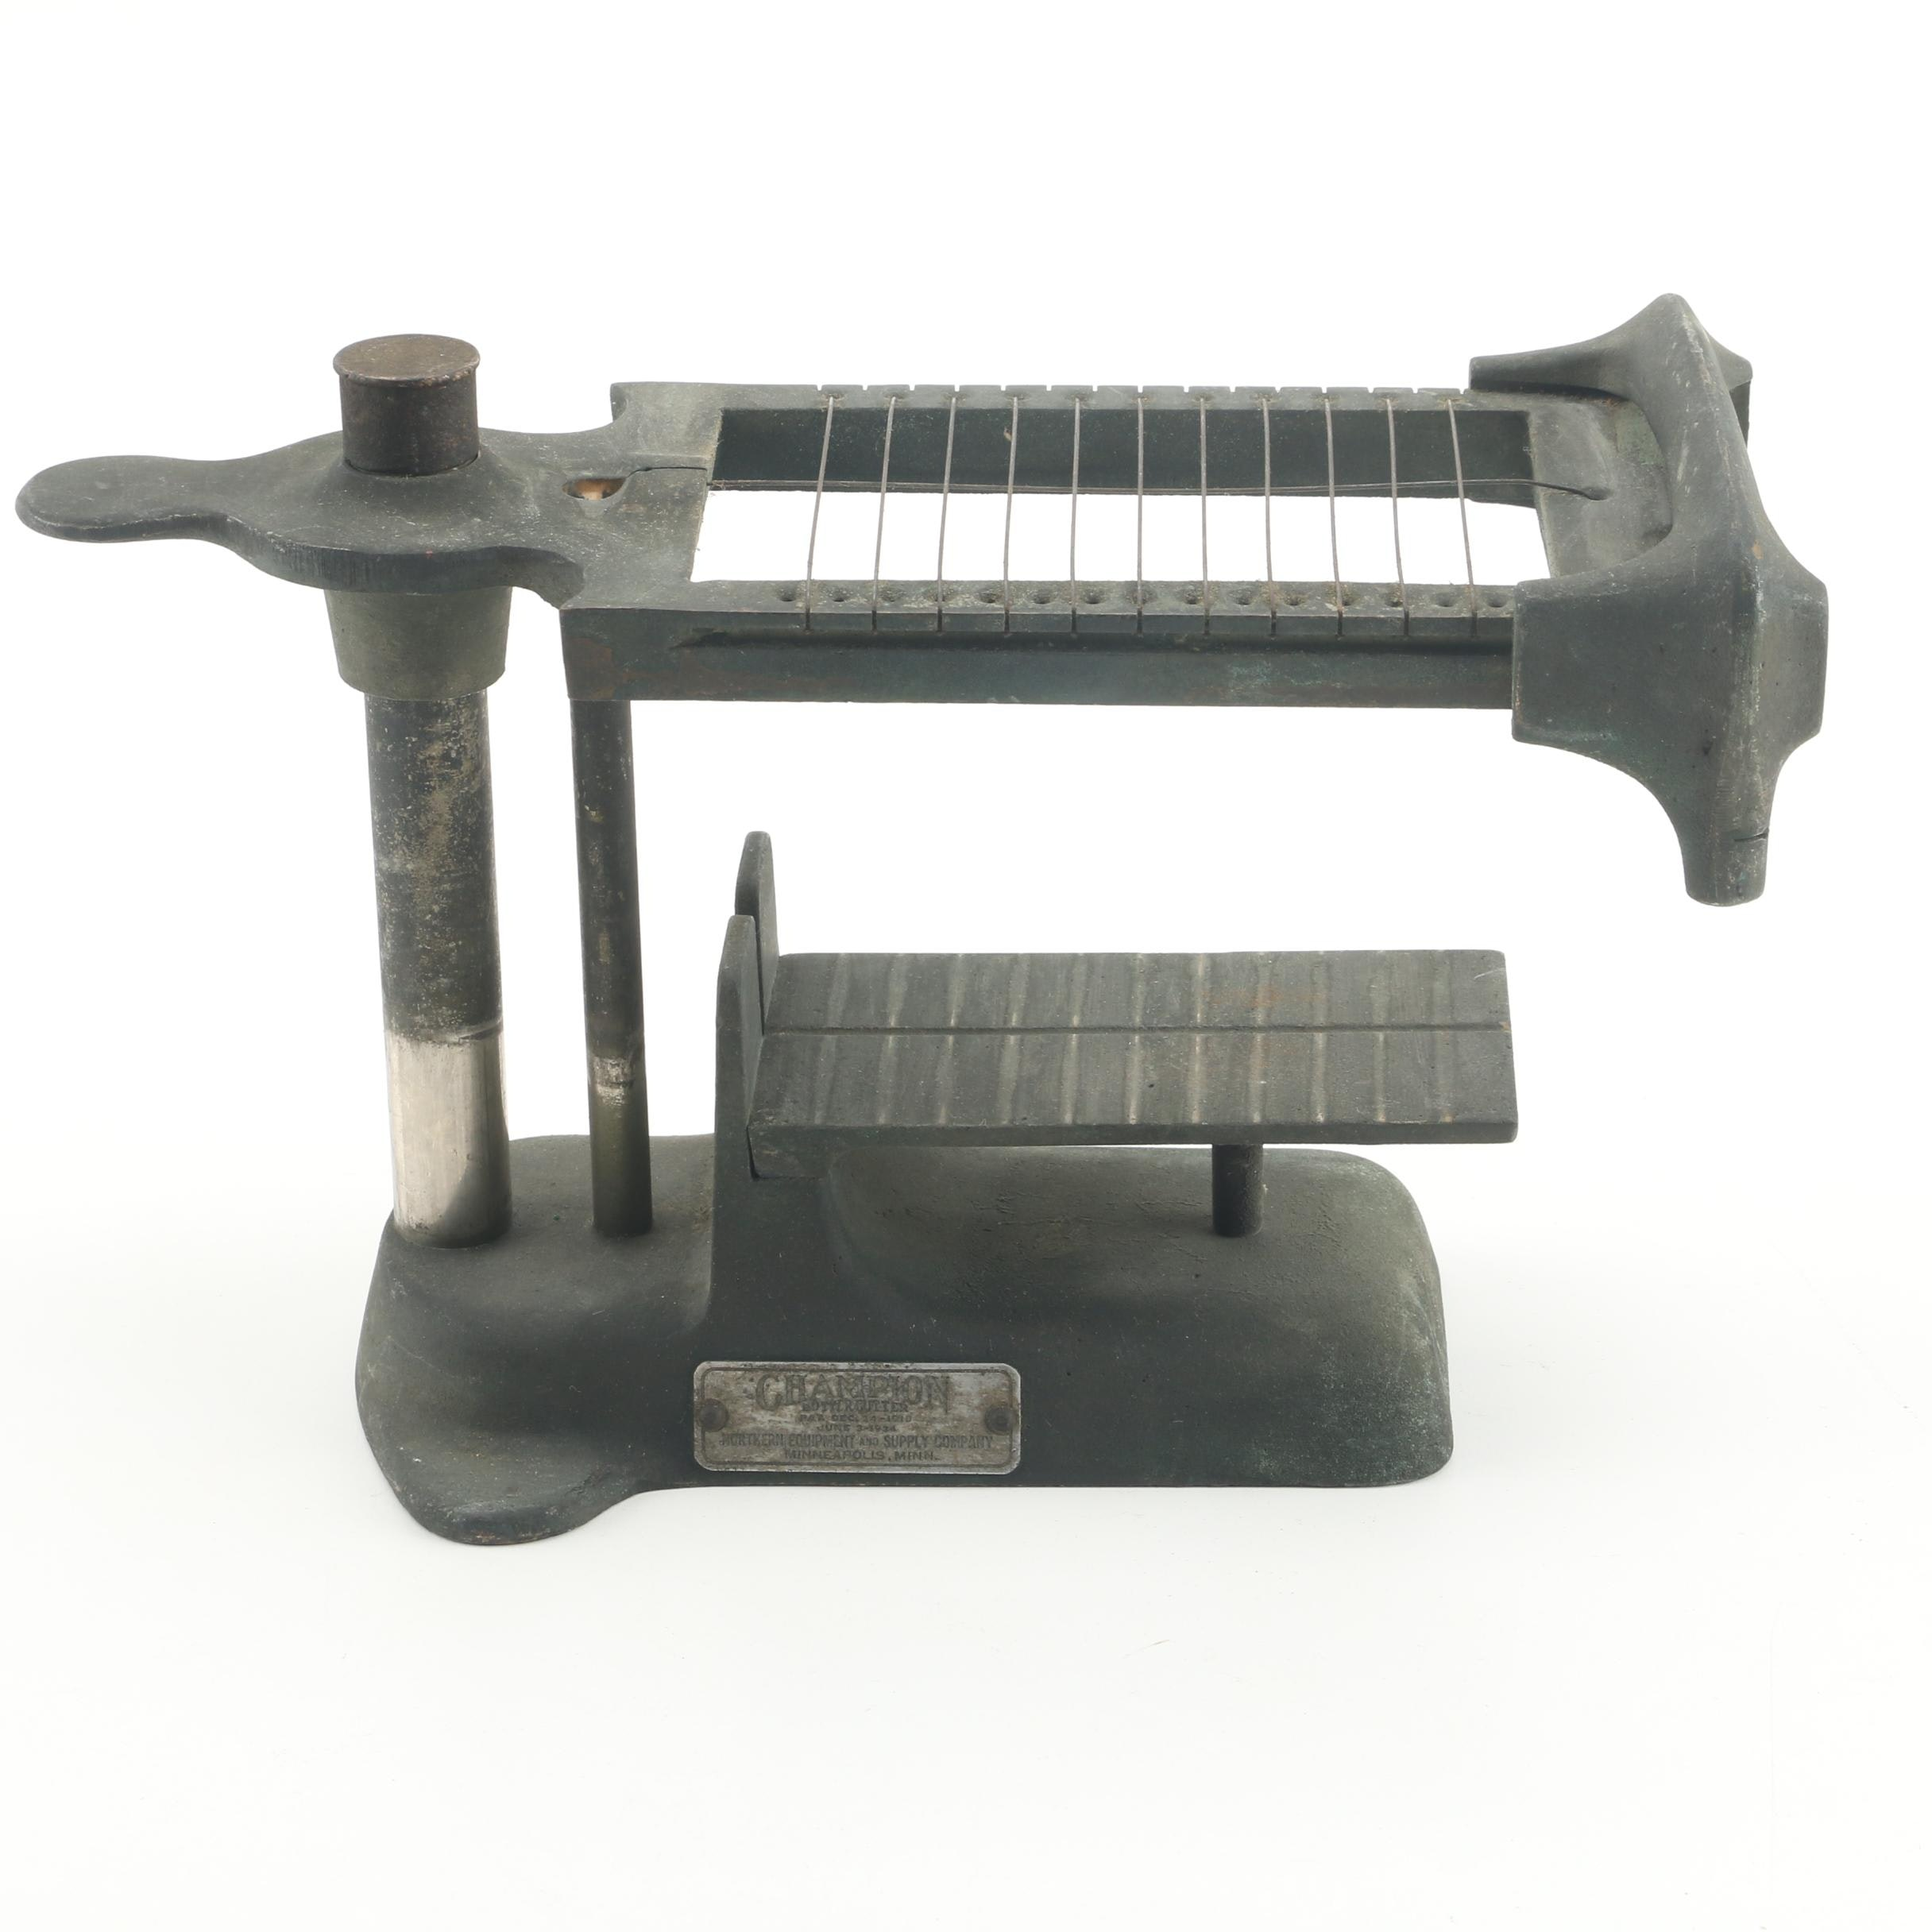 1920s Northern Equipment and Supply Co. Champion Butter Cutter